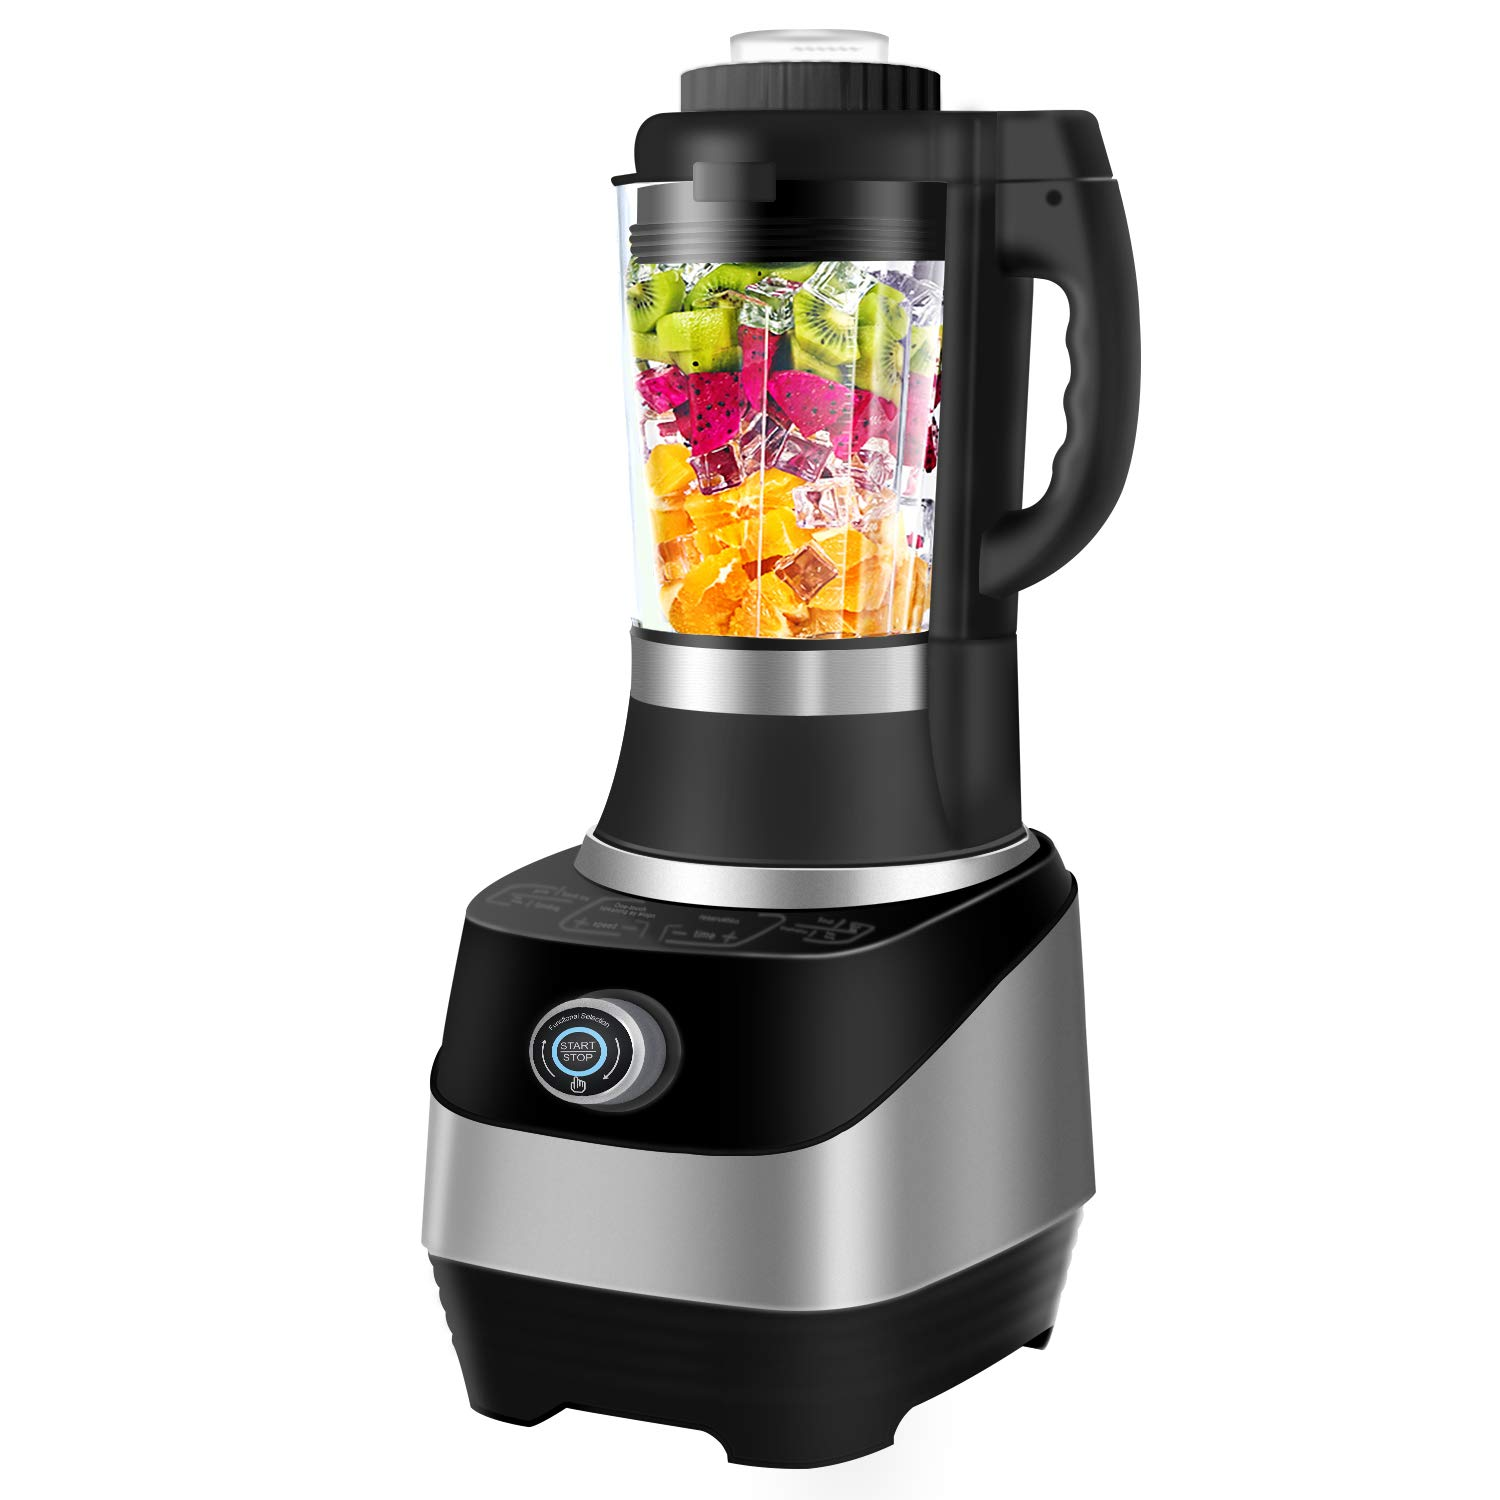 CommercialBlender with Smart touch, Multifunctional Blender, 4 in 1 Smoothie Blender Baby Food Maker, Soup maker 800W Auto-temperature Control Food Processor, Warm Disinfect